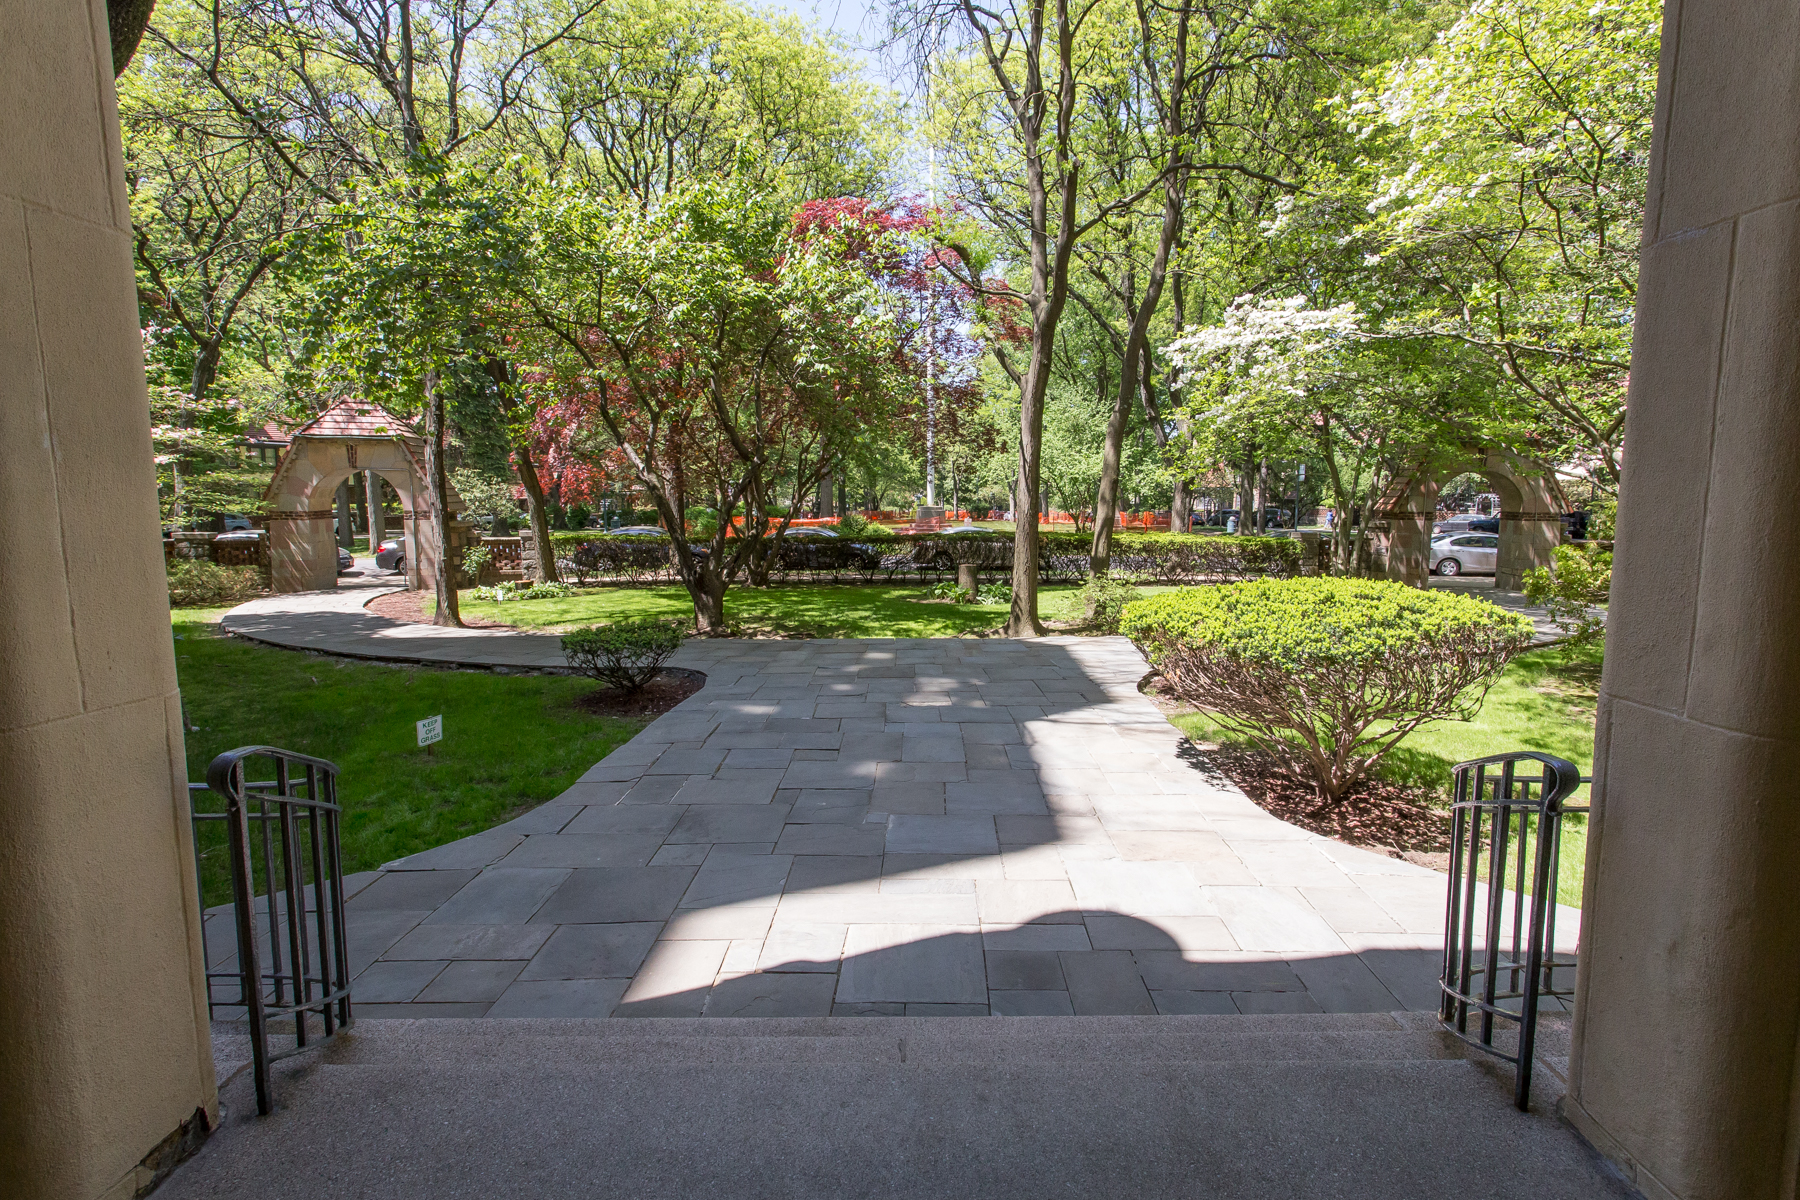 """Additional photo for property listing at """"2 BEDROOM, 1 BATH IN FOREST HILLS GARDENS""""  Forest Hills, New York 11375 United States"""